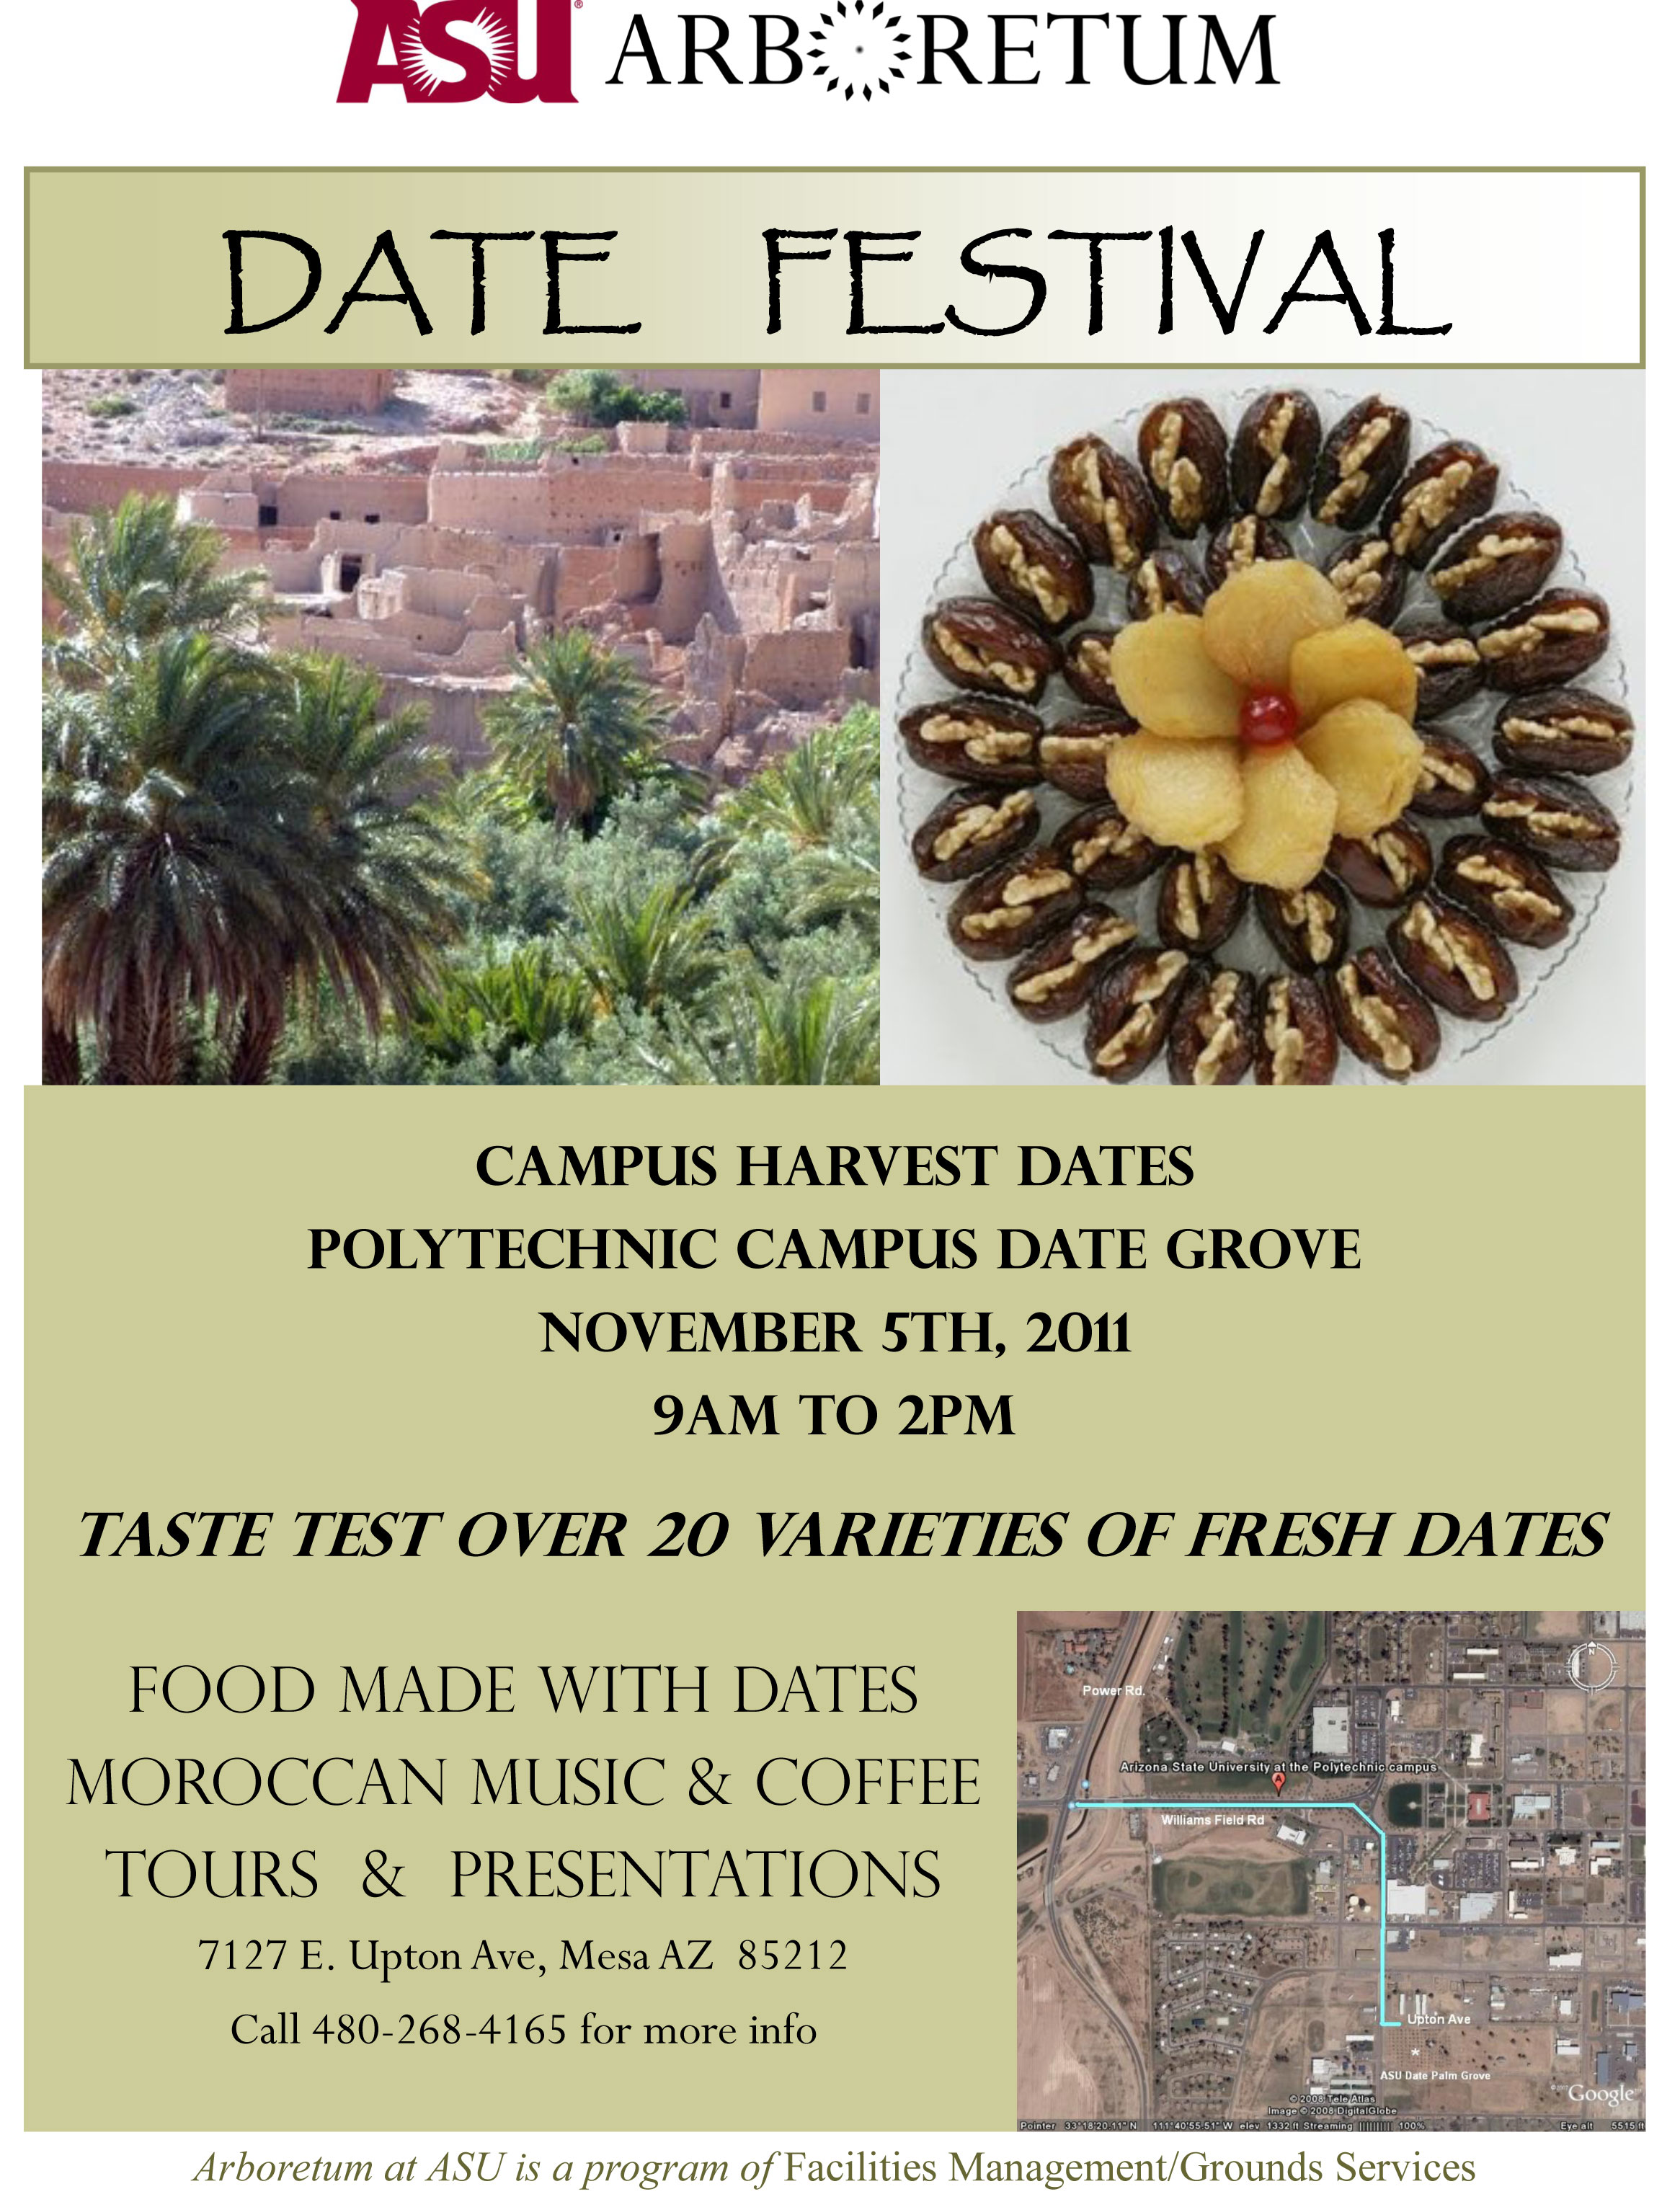 Date festival next weekend - New Cyprus Magazine